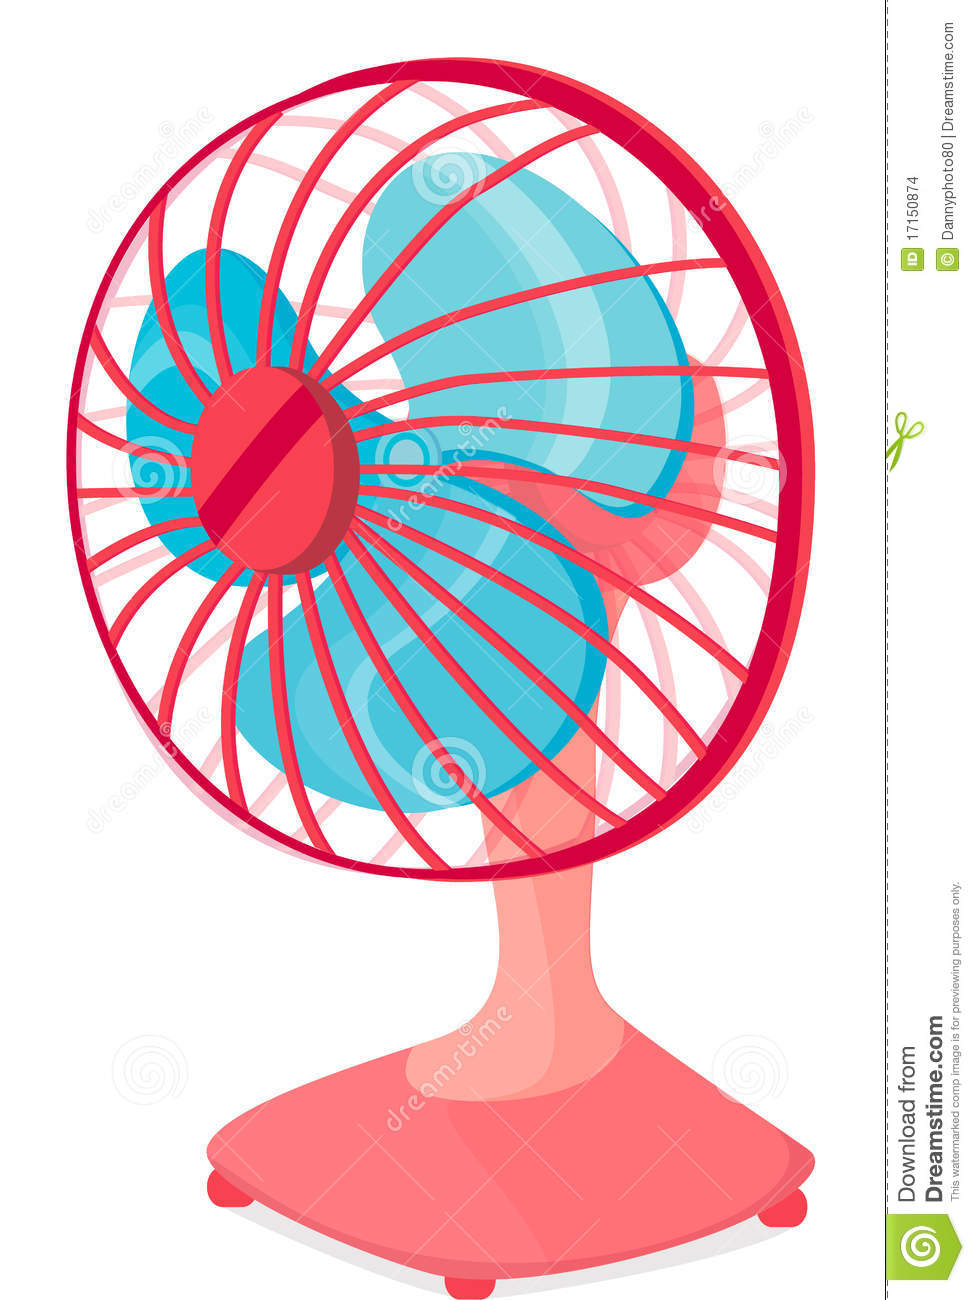 Table fan | Clipart Panda - Free Clipart Images